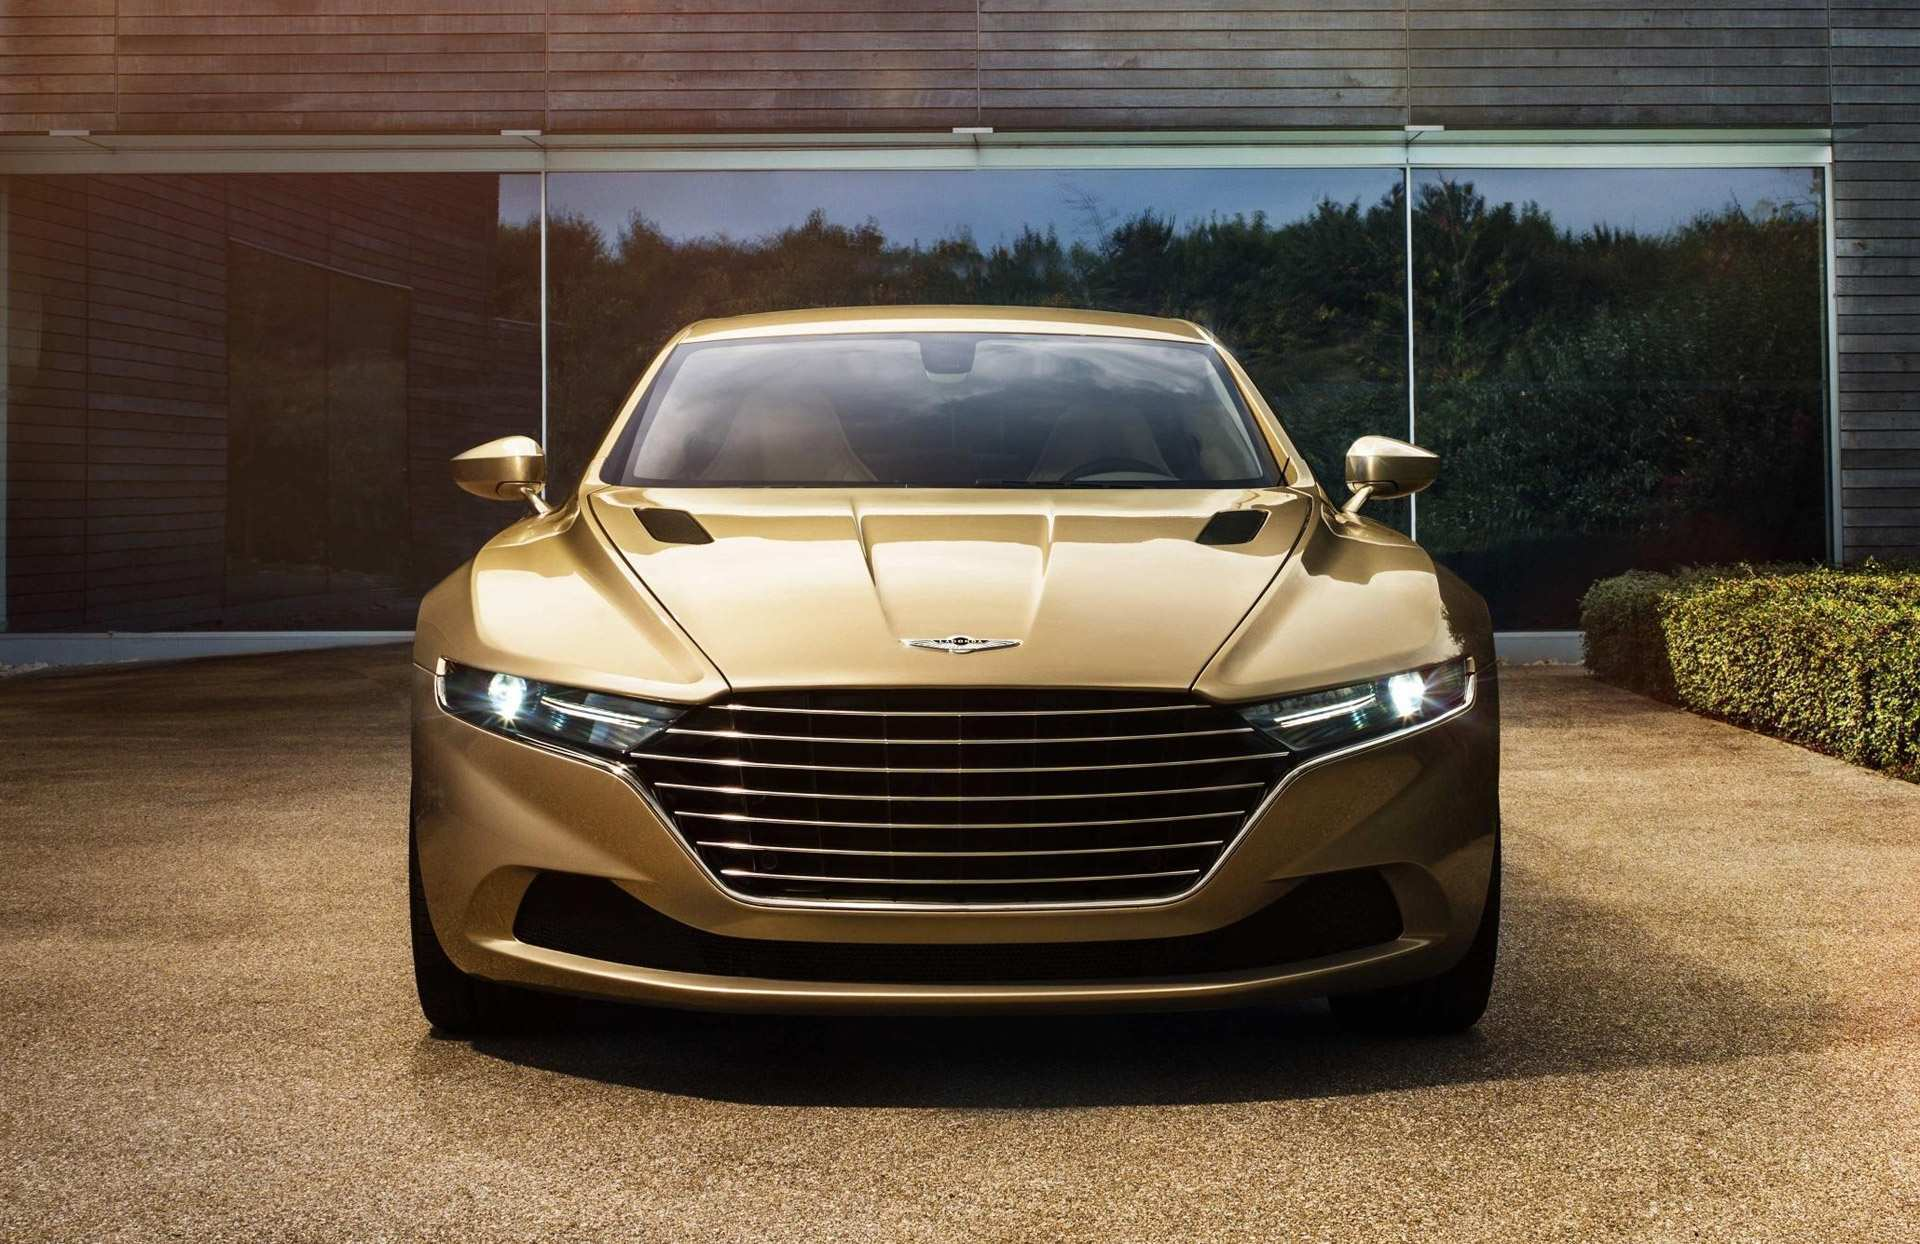 55 Best Review 2020 Aston Martin Lagonda Wallpaper with 2020 Aston Martin Lagonda